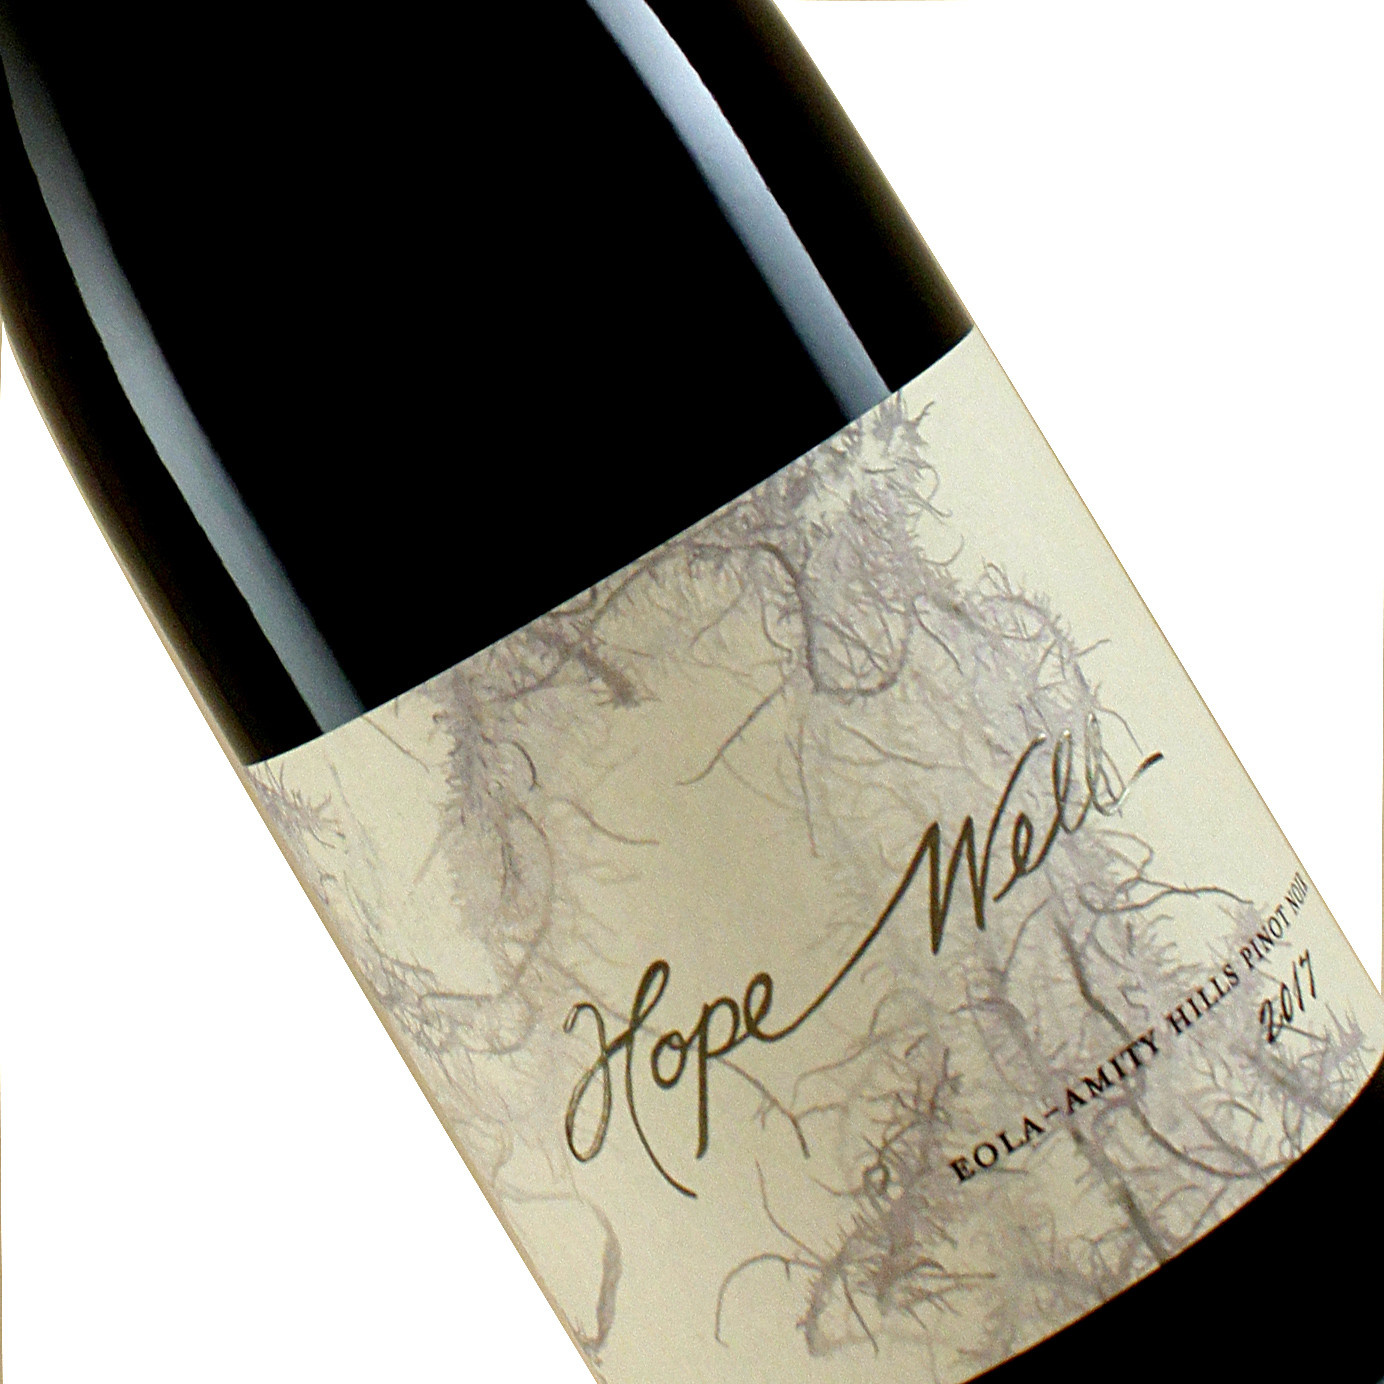 Hope Well 2017 Pinot Noir Eola-Amity Hills, Oregon